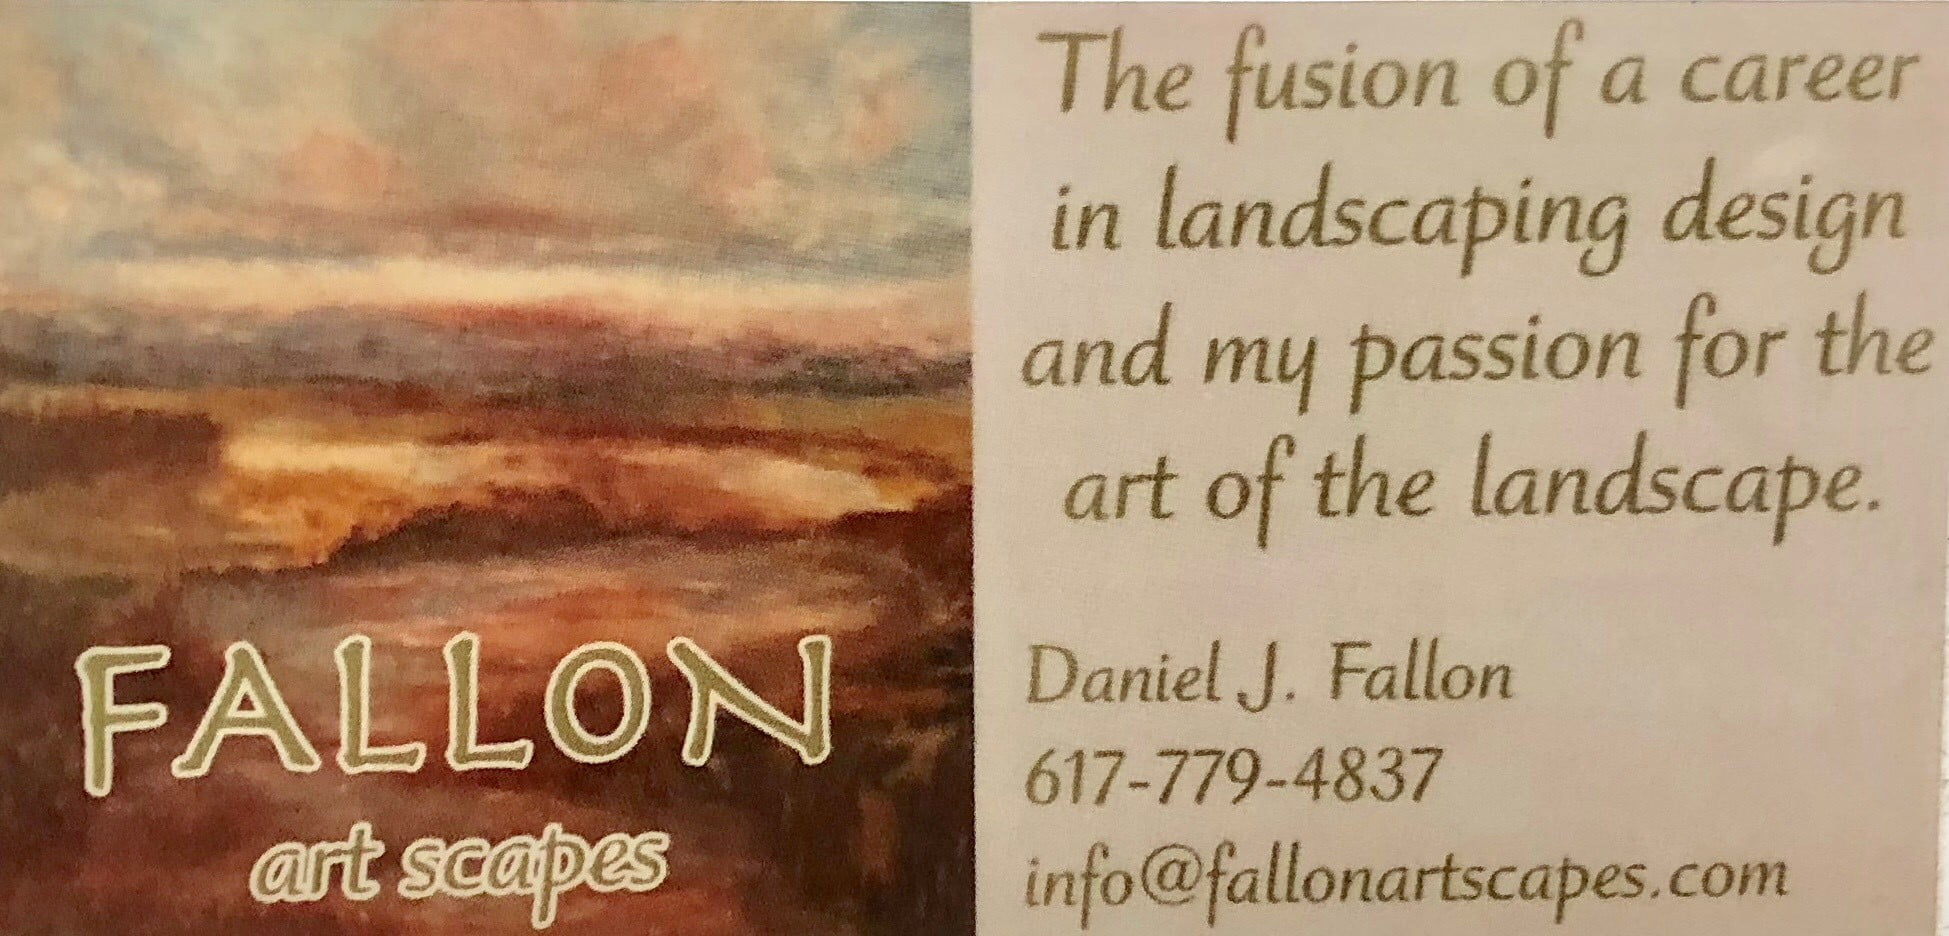 Fallon Art Scapes